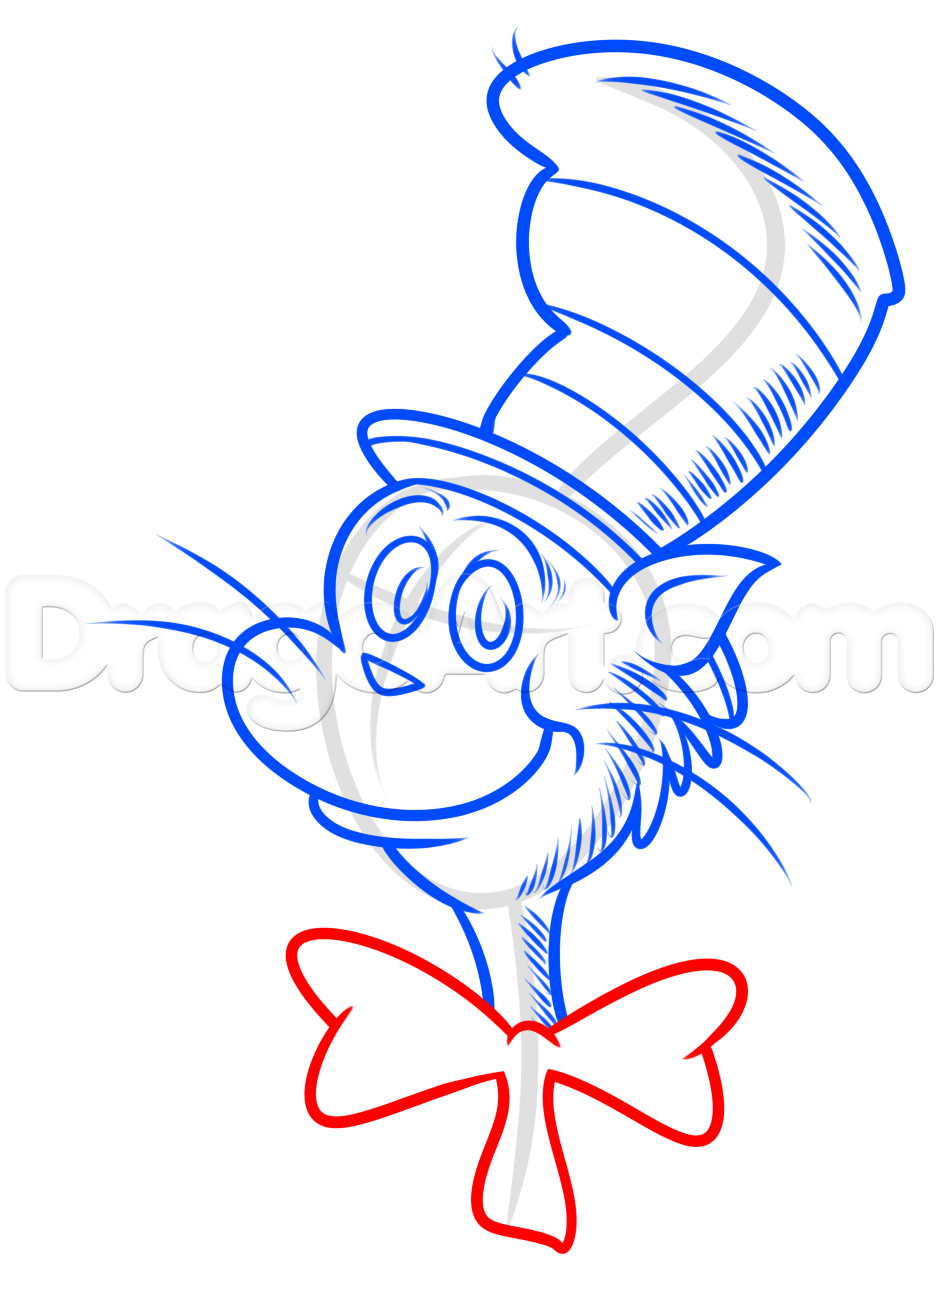 939x1304 Cat In The Hat Drawing How To Draw The Cat In The Hat, Dr Seuss